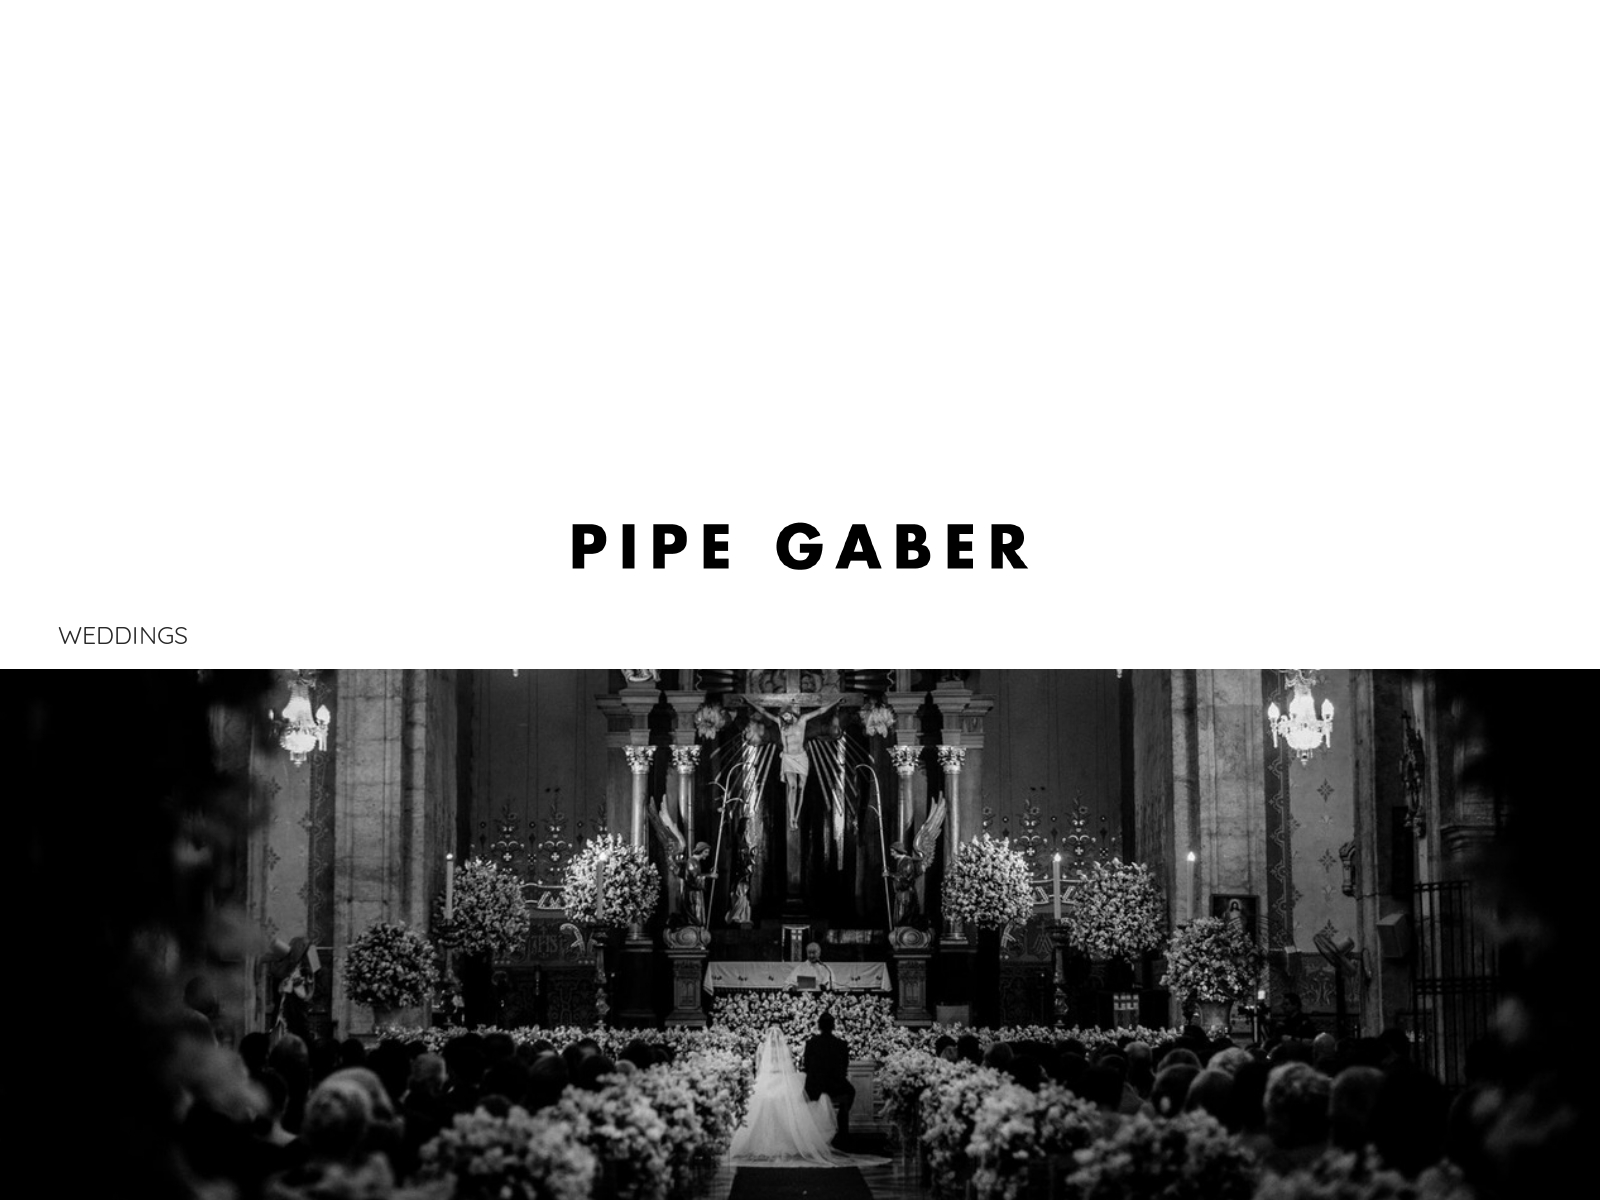 PRICING 2019 PIPE GABER_page-0001.jpg